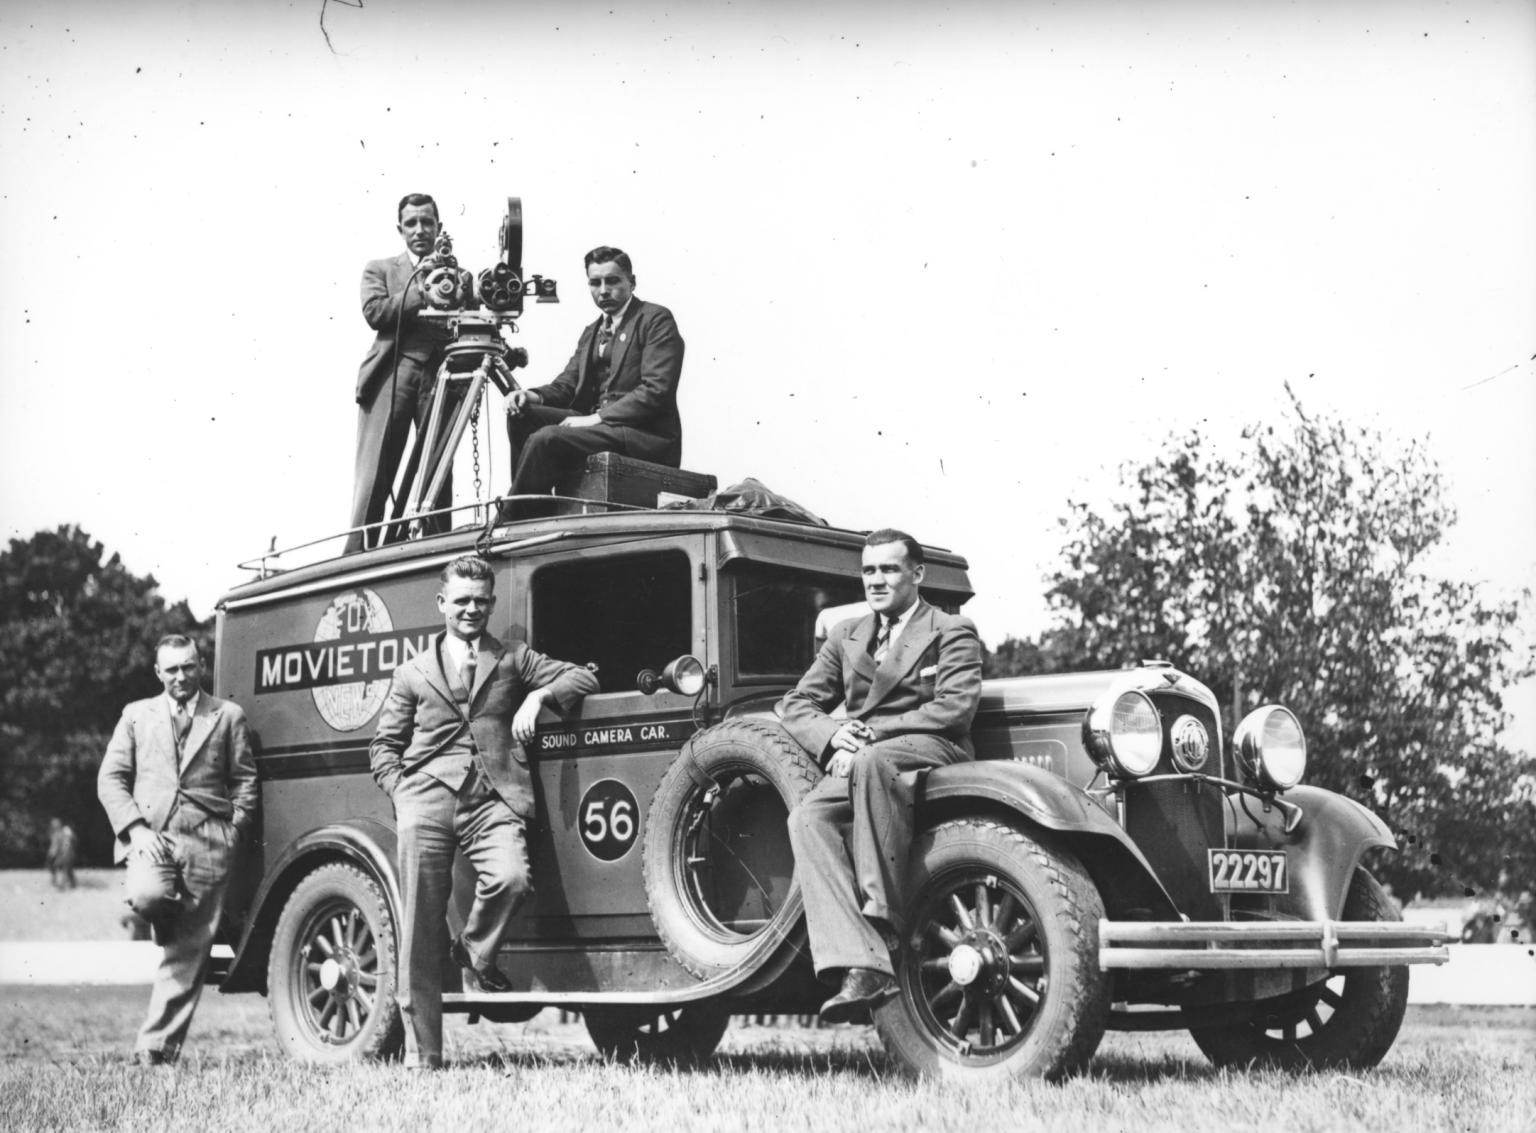 Bill Trerise with a camera on a tripod and one other man on top of Movietone Sound camera car 56, with three other men on the ground.